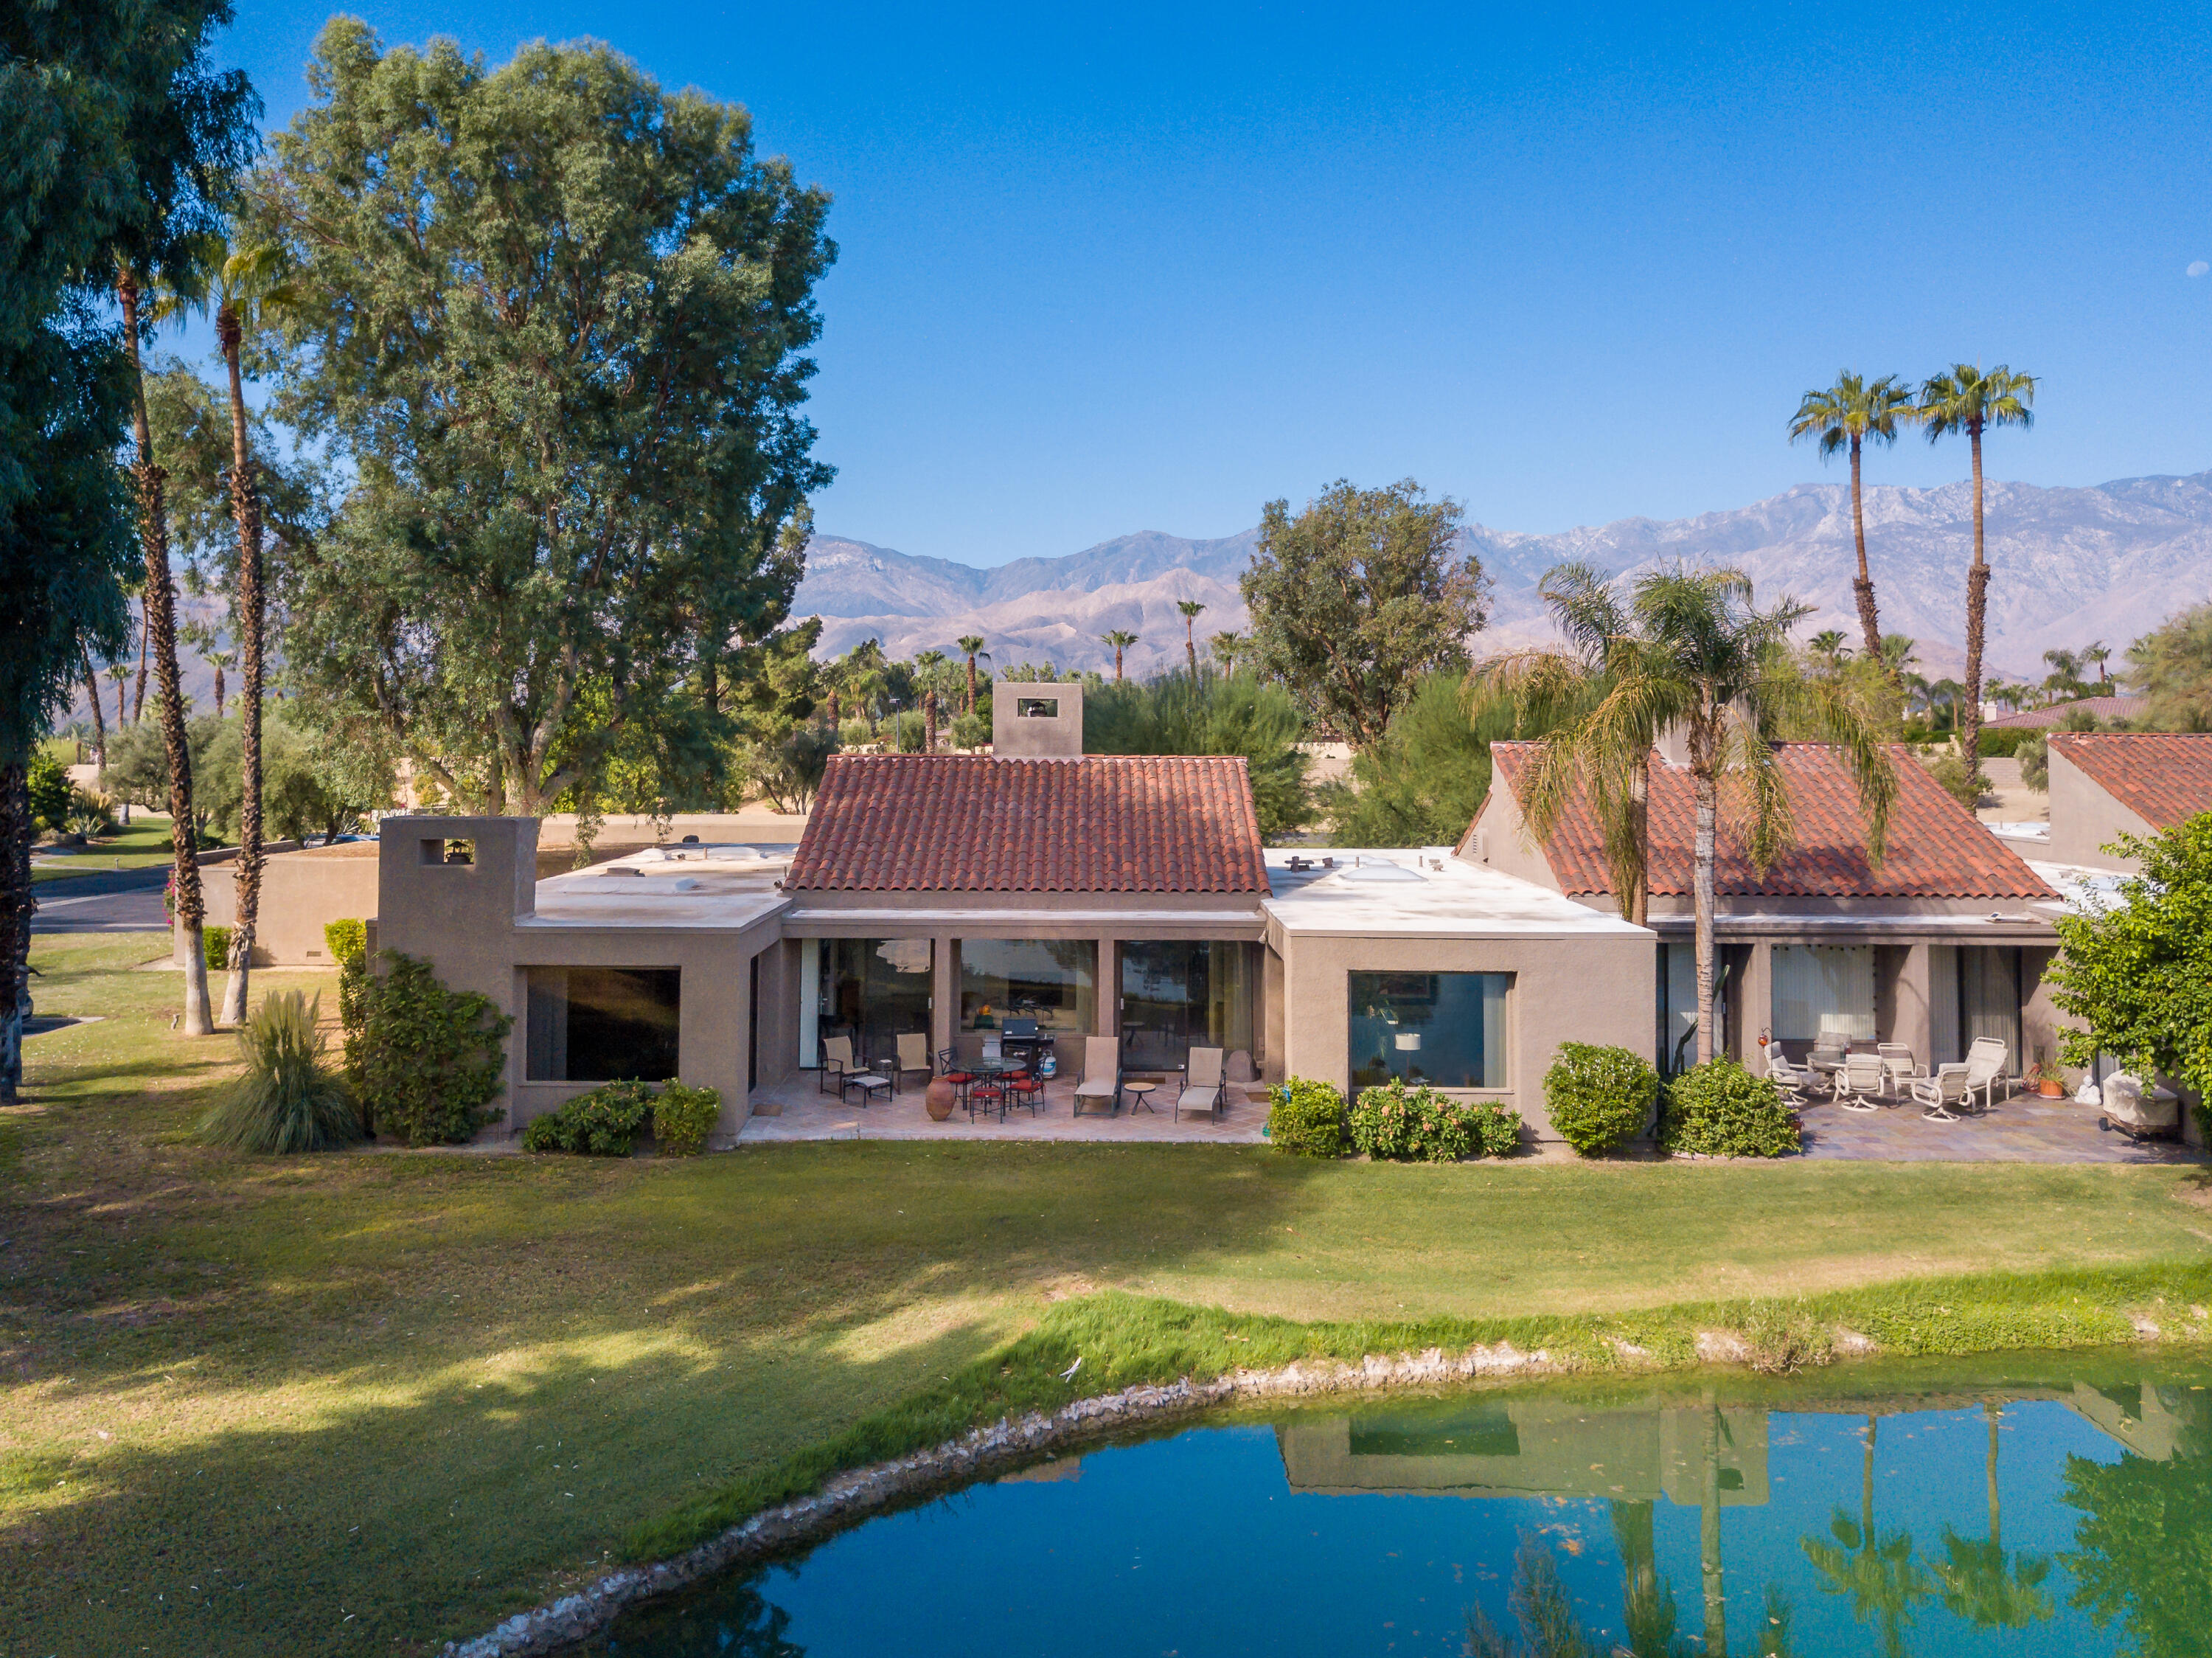 Price reduction - Located within the beautiful gates of Mission Hills Country Club in Rancho Mirage, this lovely 3 bed / 3 bath - 2,727 sq. ft condo is an end-unit with unobstructed lake views!  Recently remodeled & upgraded. Large kitchen, granite counter tops, new appliances, new lighting, new carpet and tile.  Being sold turnkey furnished.  Close to community pool & spa.  Mission Hills Hoa includes landscaping, cable tv, guard gate, community pools, exterior maintenance of roofs and painting.  Plus 3 championship golf courses - Arnold Palmer, Pete Dye Challenge, & Dinah Shore Tournament.  Minutes away from Palm Springs Airport, Eisenhower Medical, The River and Agua Casino. Private golf, social and tennis/gym memberships are available at the Mission Hills Country Club, a golf cart ride away.